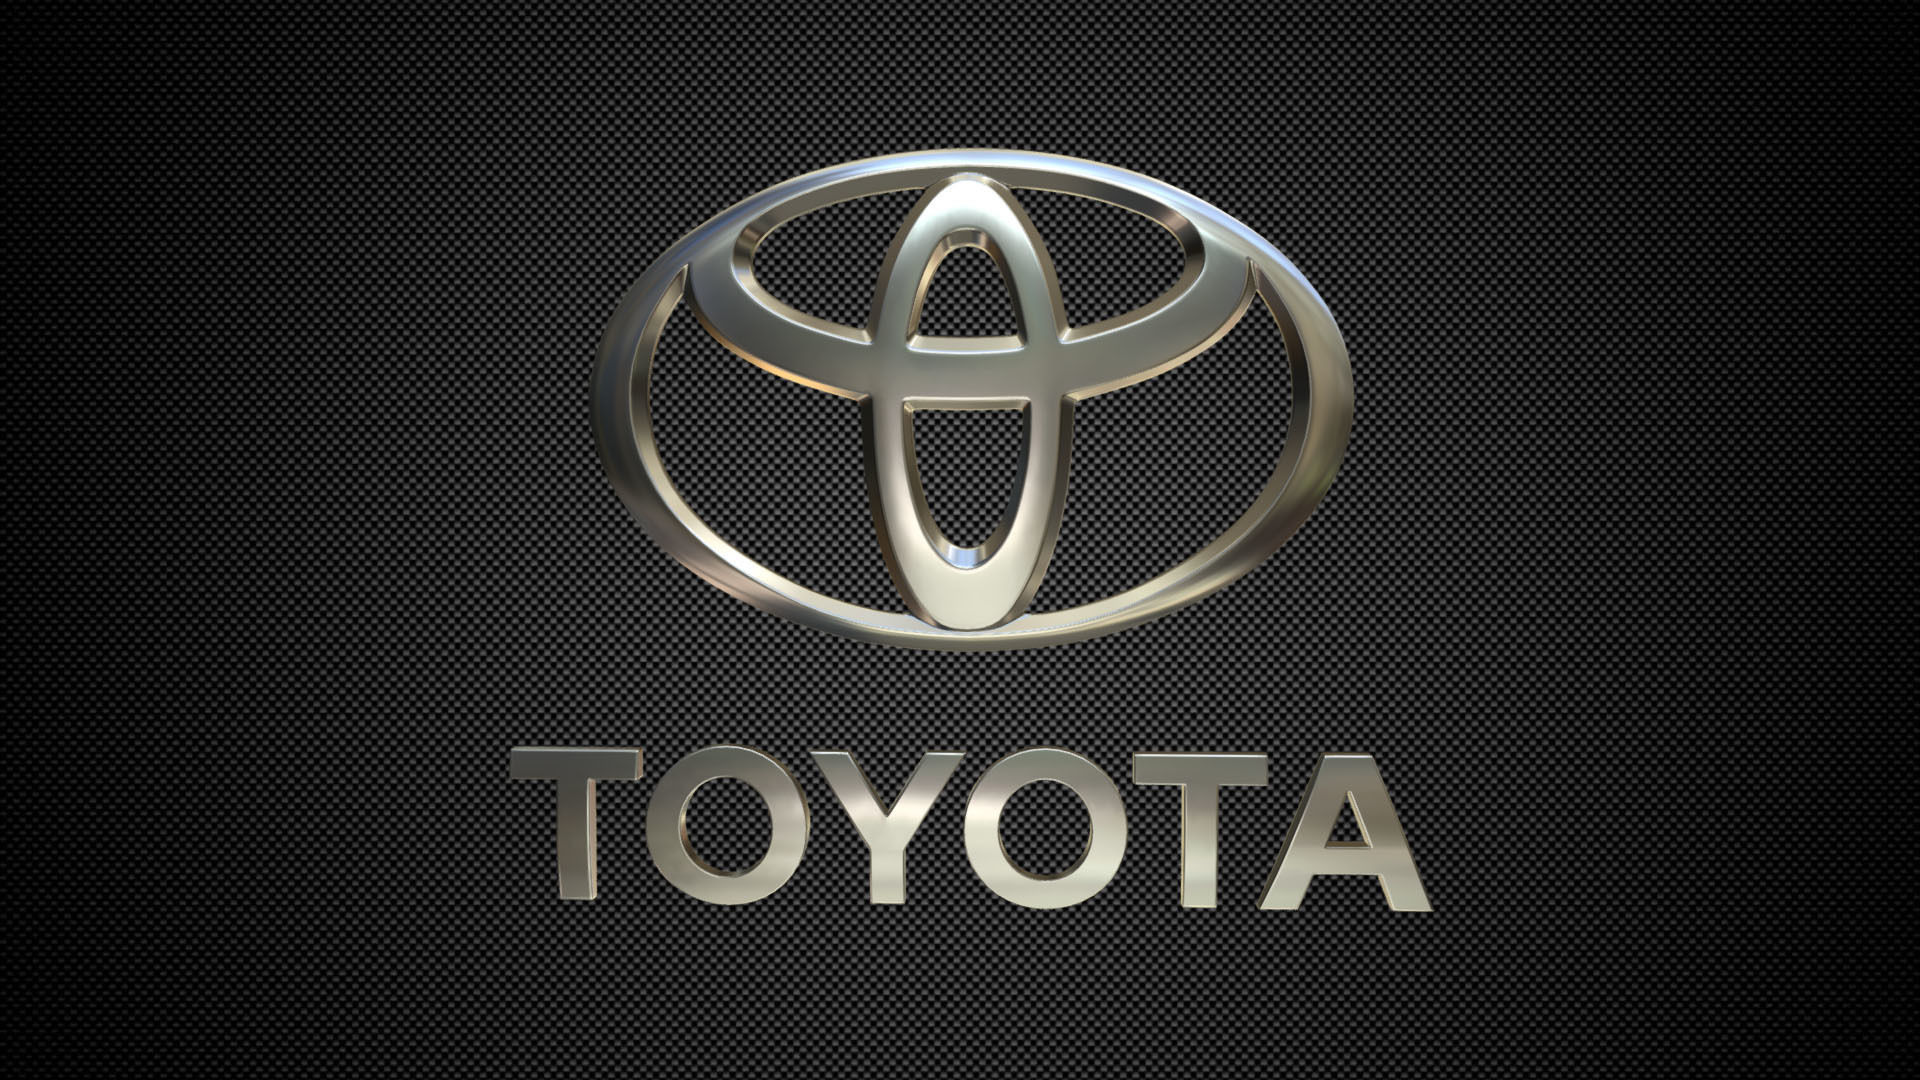 Toyota Automotive manufacturer